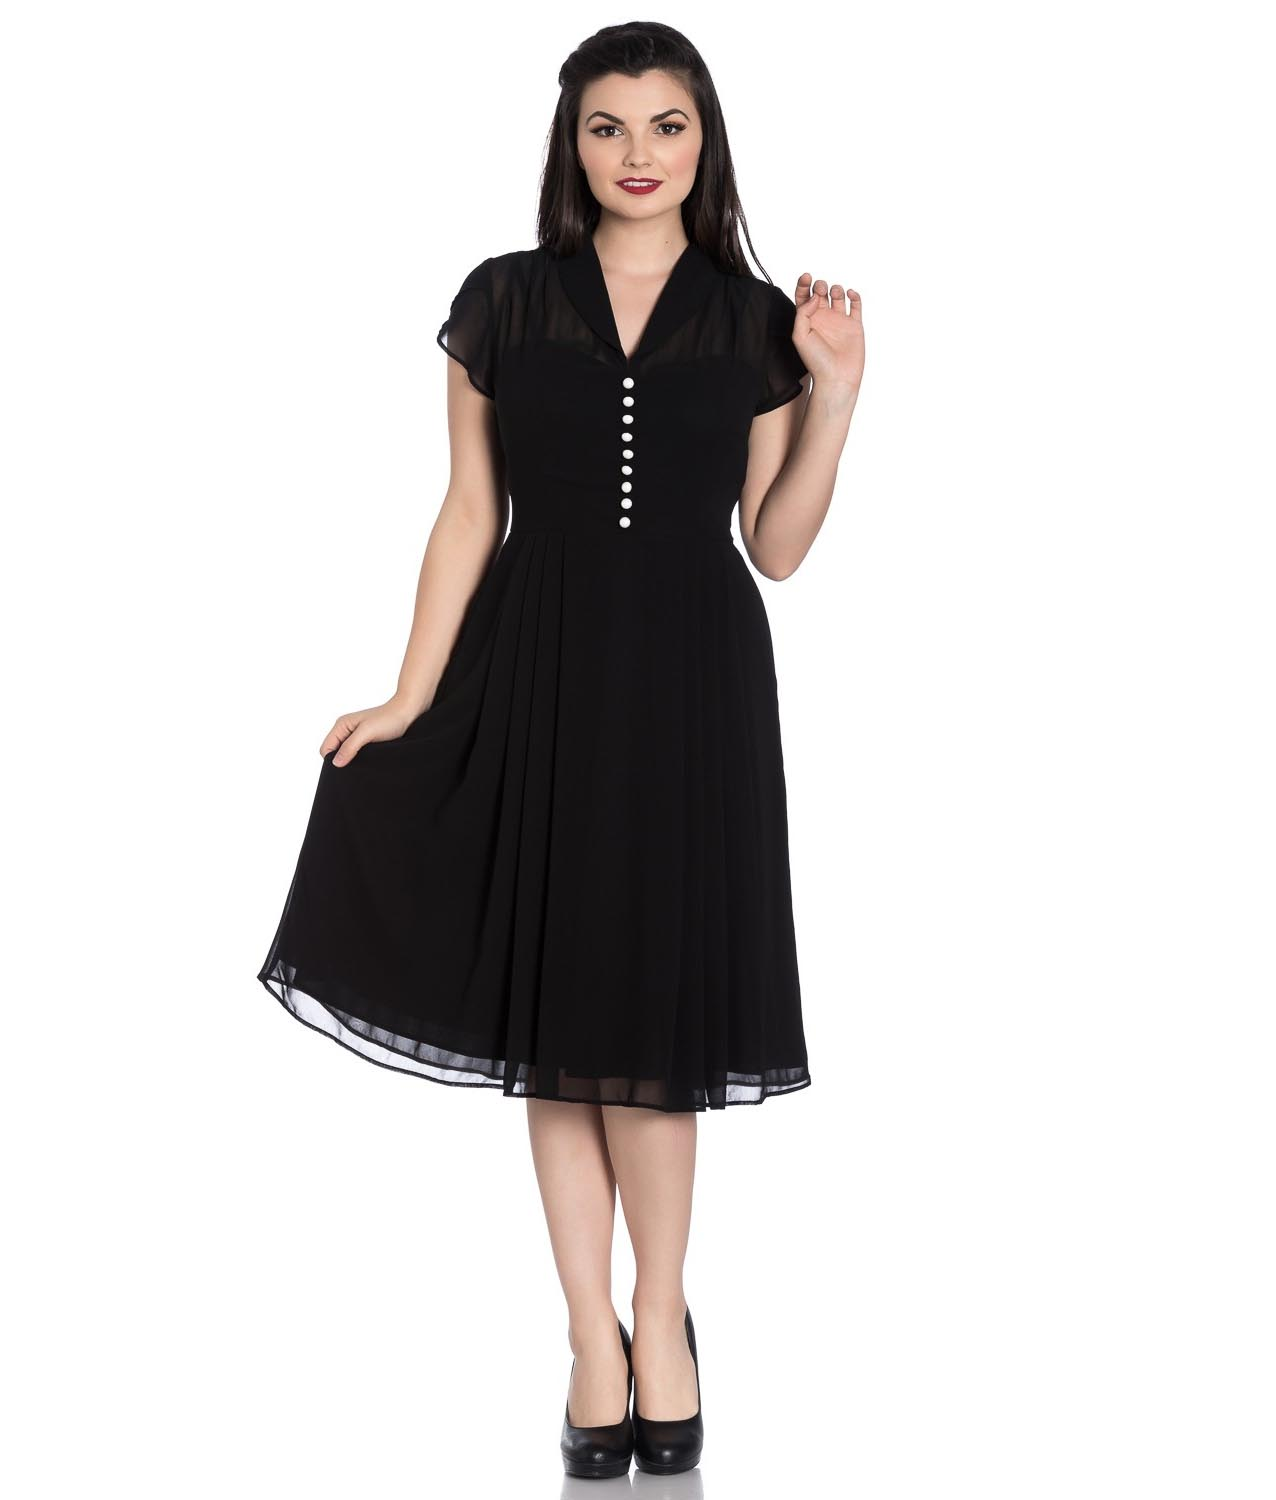 Hell-Bunny-40s-50s-Elegant-Pin-Up-Dress-PAIGE-Black-Chiffon-All-Sizes thumbnail 3